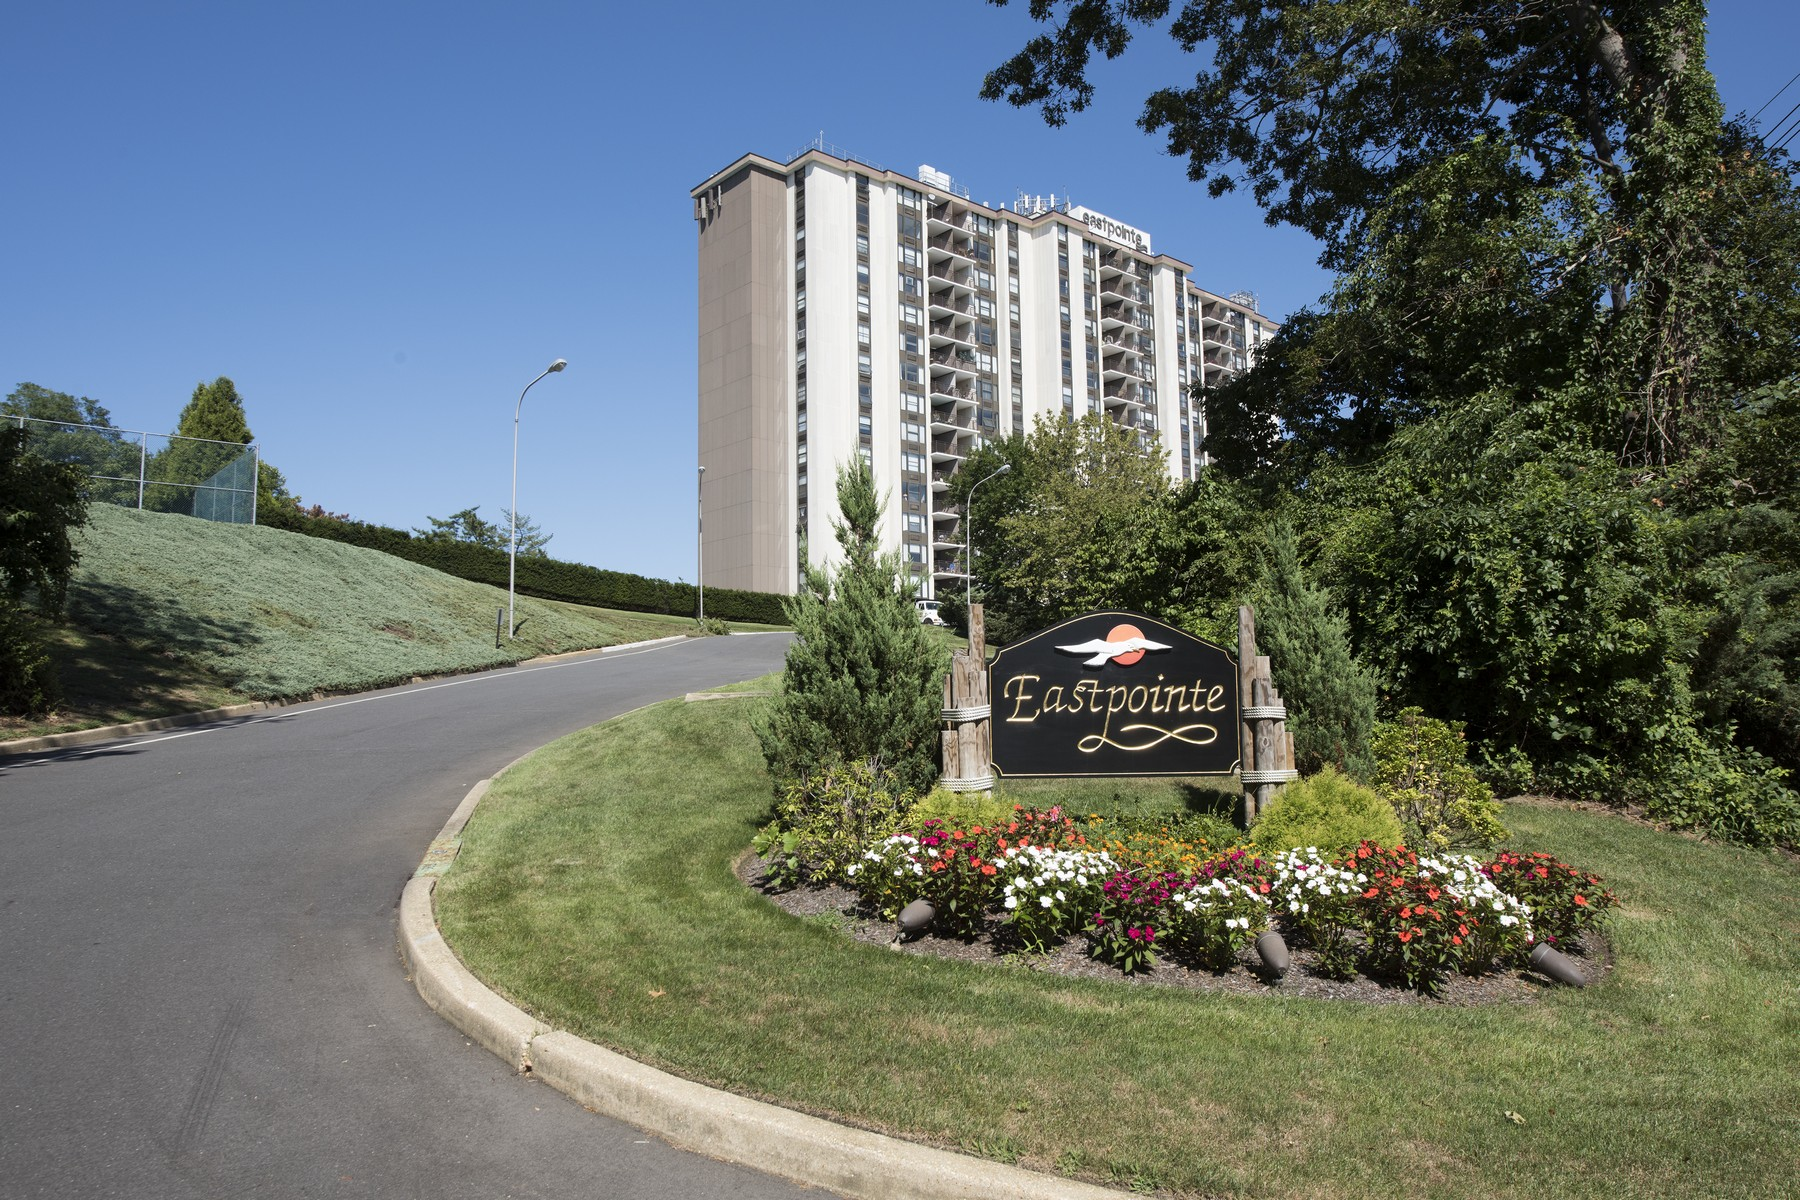 Condominium for Sale at Eastpointe Condominiums 1 Scenic Drive. #408 Highlands, New Jersey 07732 United States